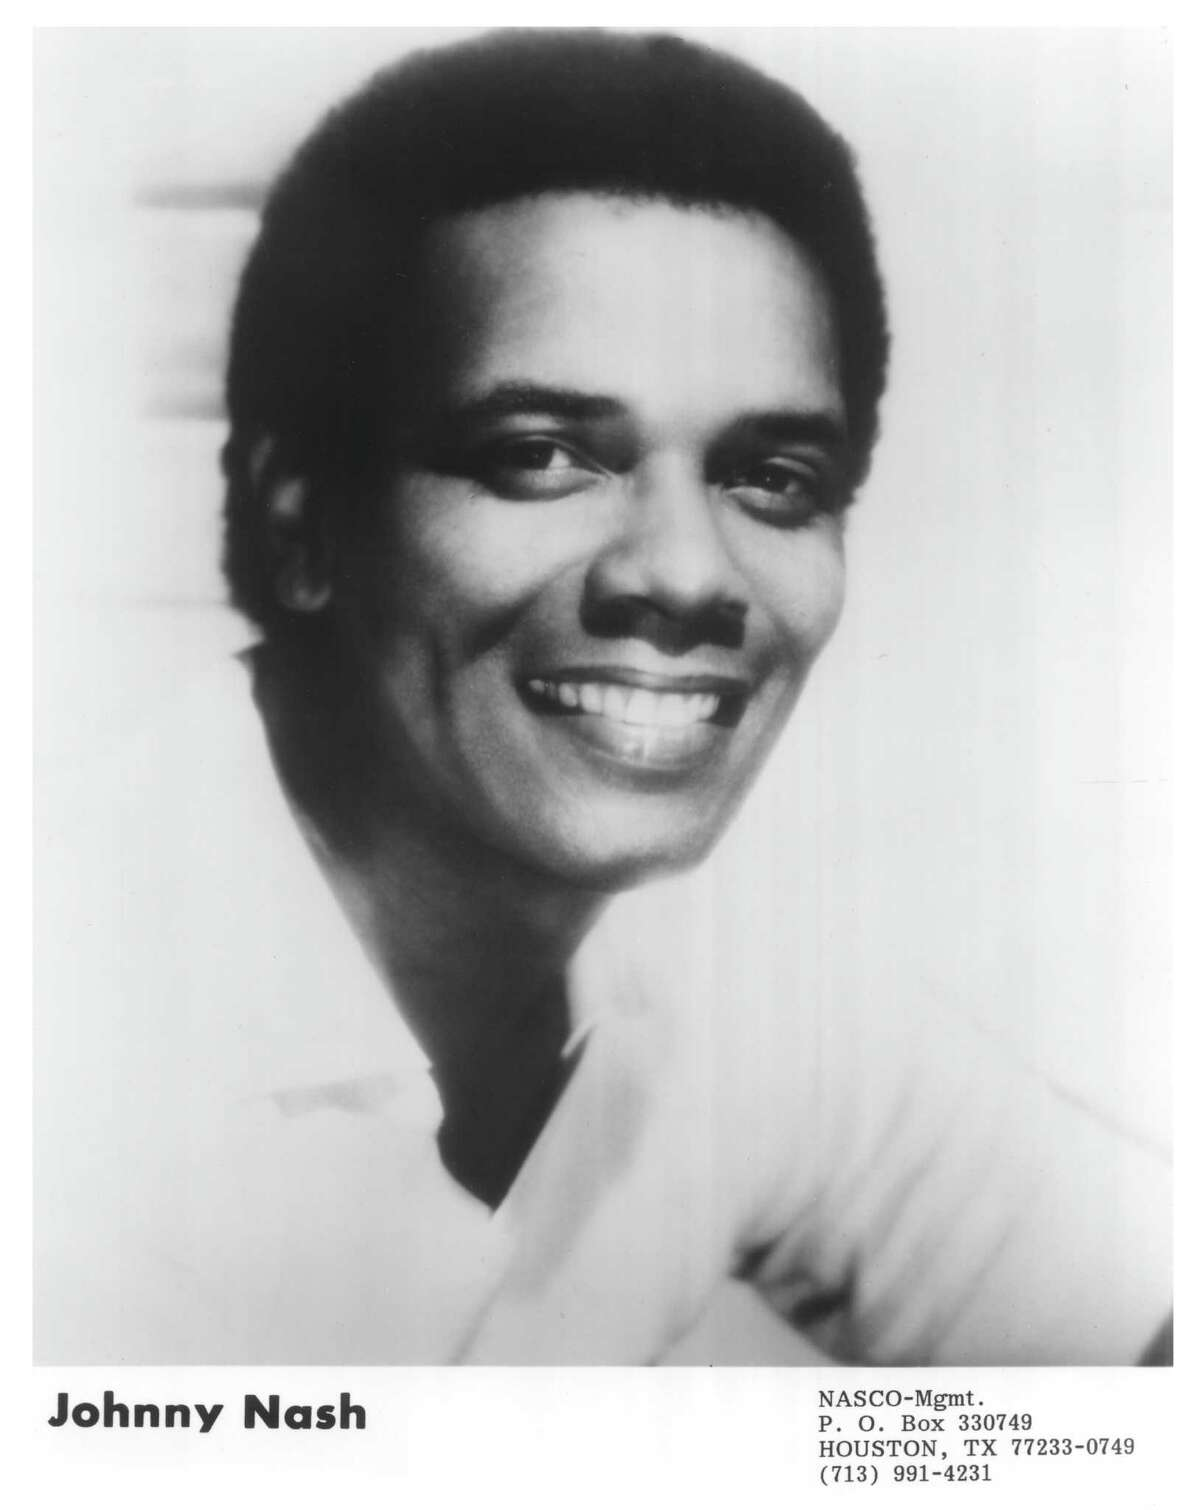 Johnny Nash was best known for his song